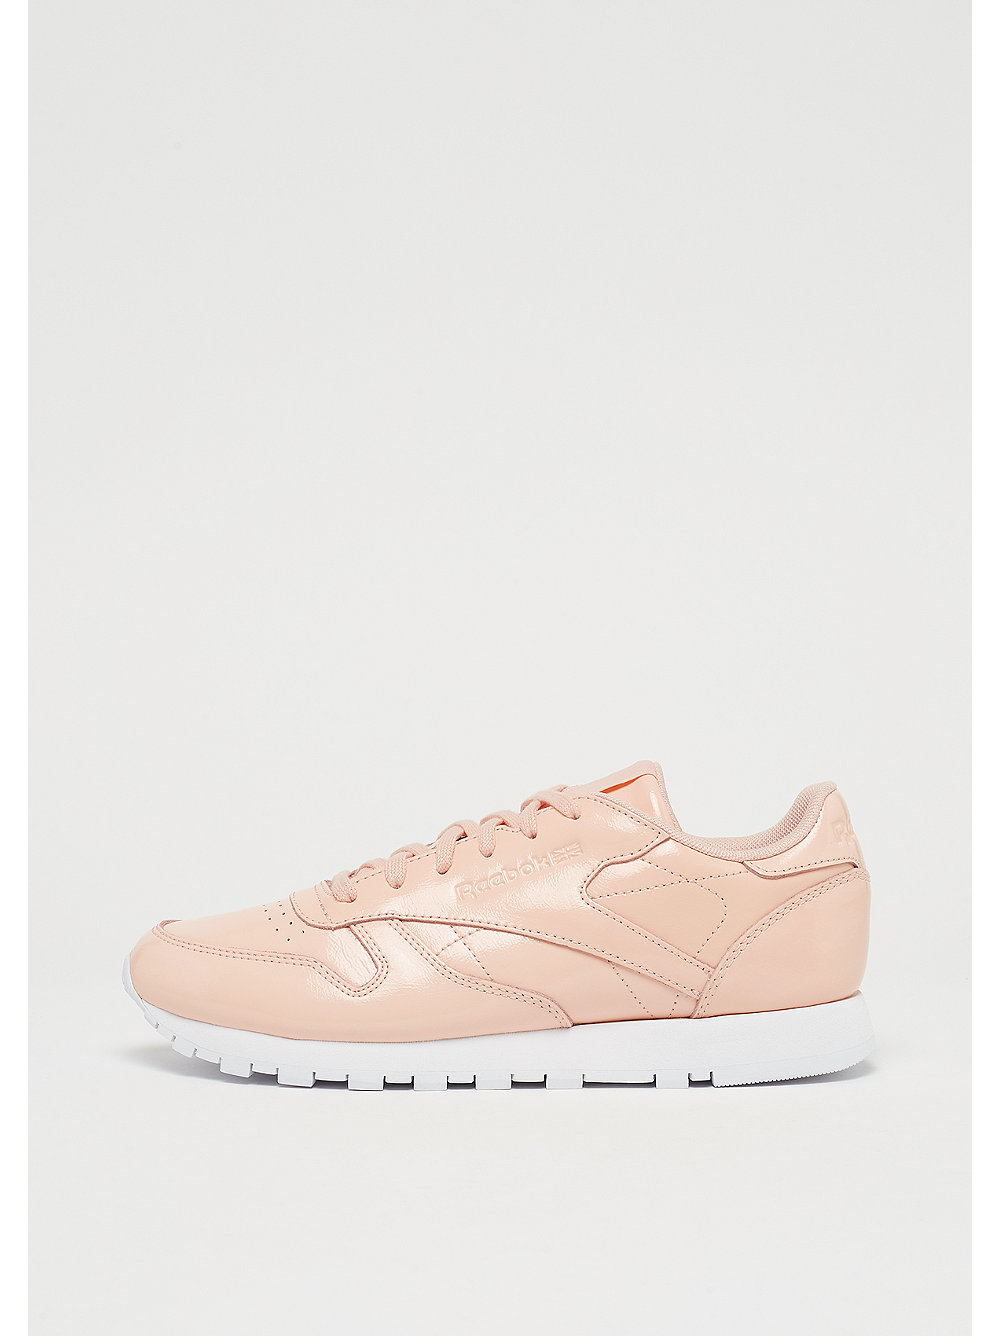 Reebok Classic Leather THR Patent